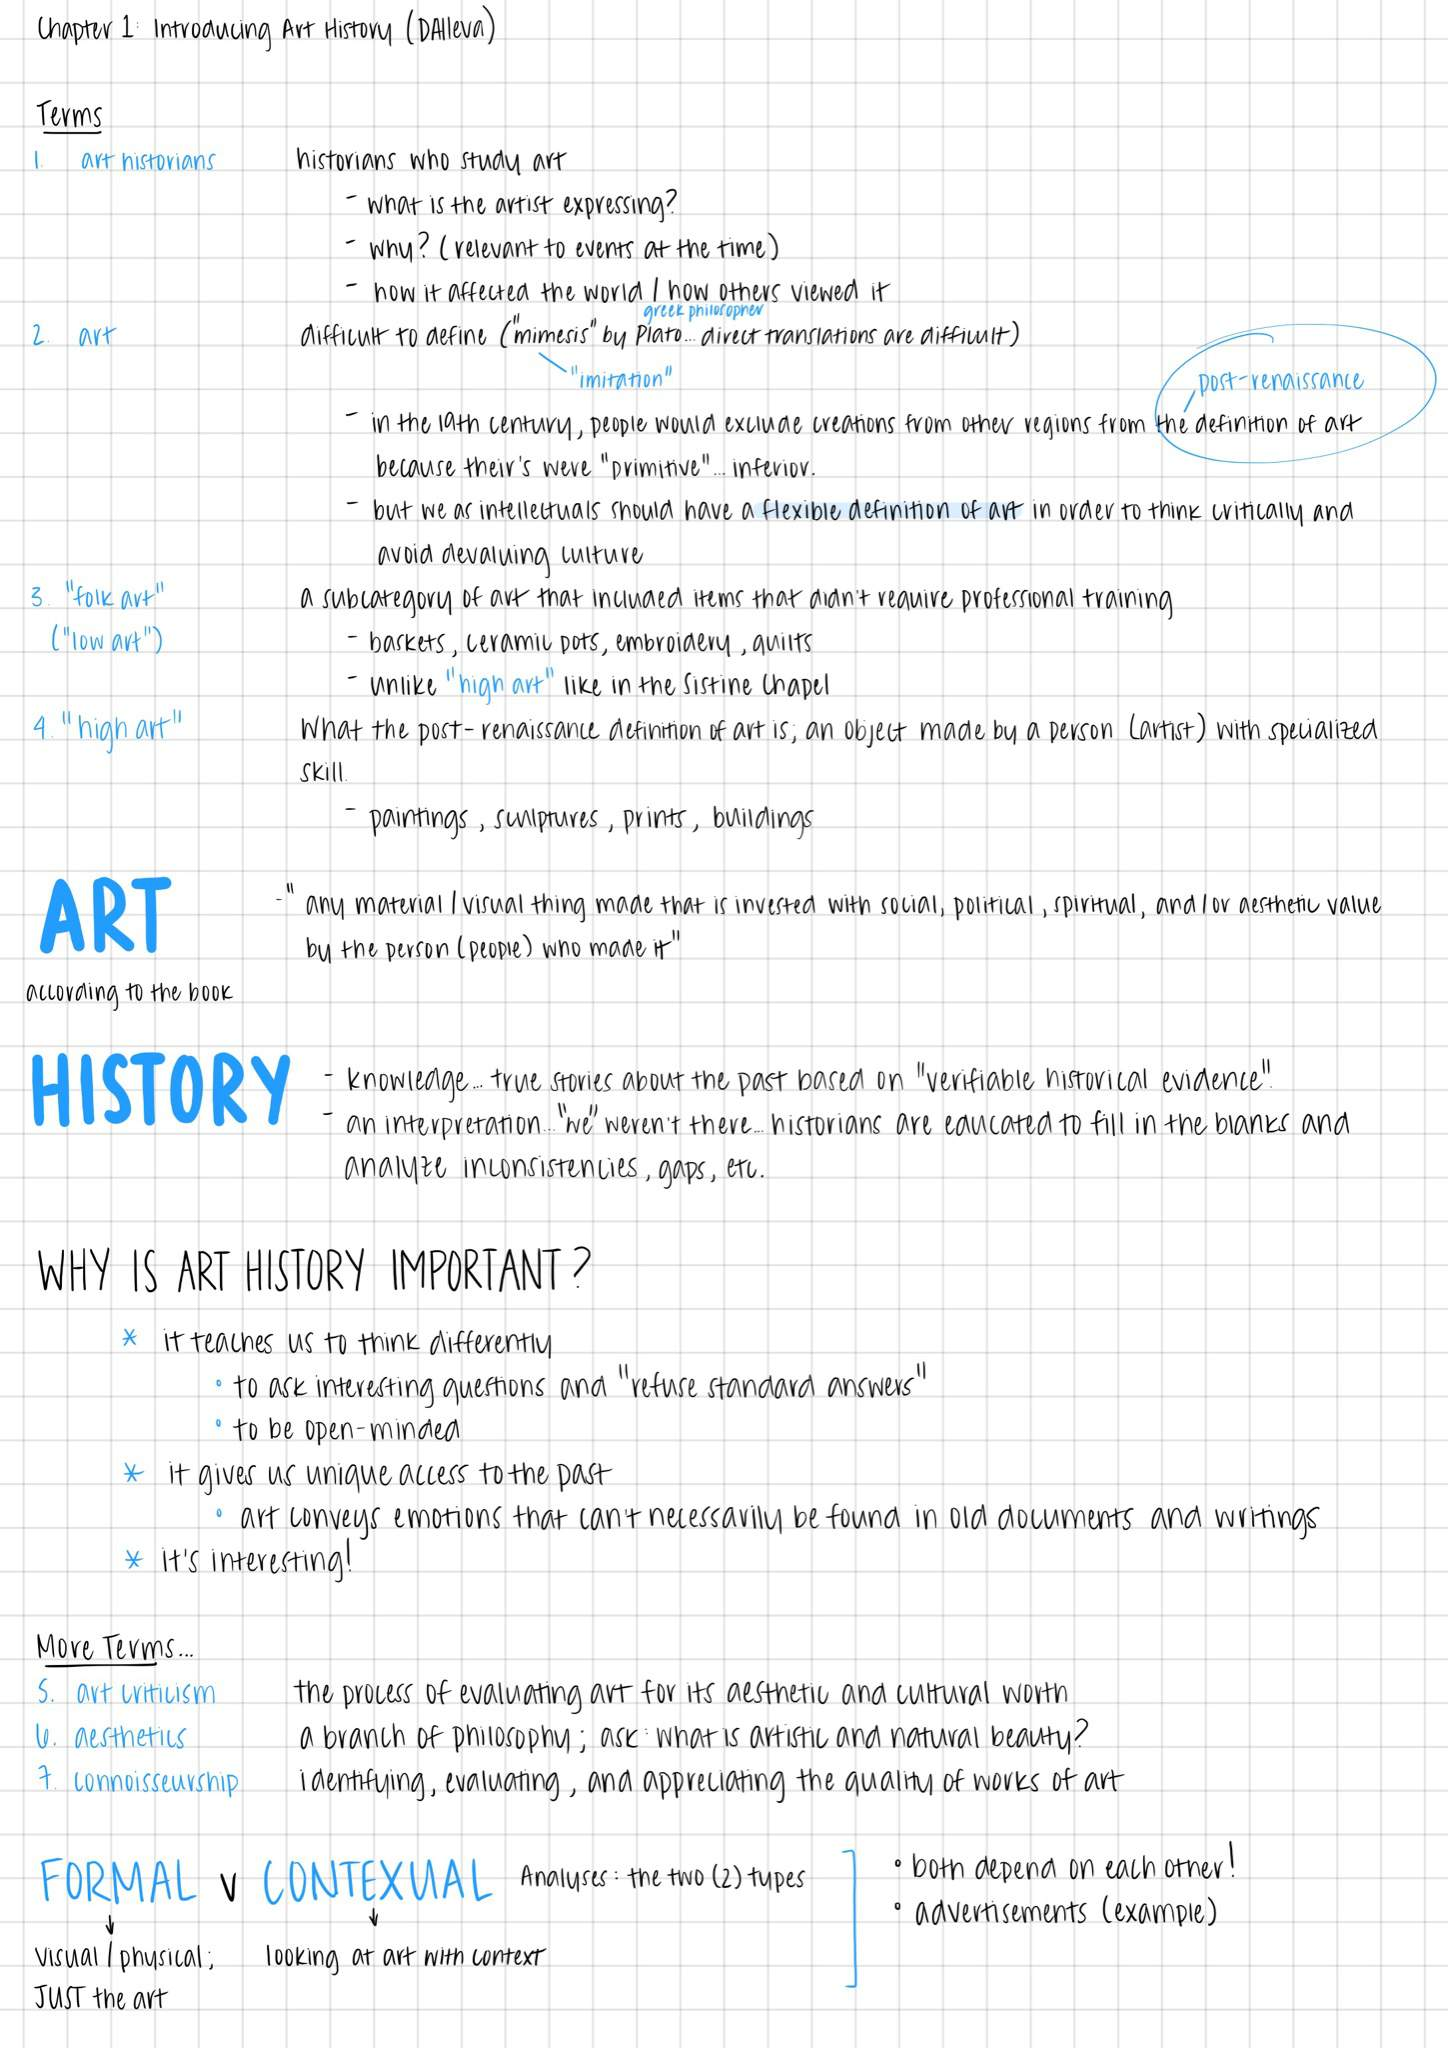 Week 1 - Asian Art History Notes | Studying Amino Amino